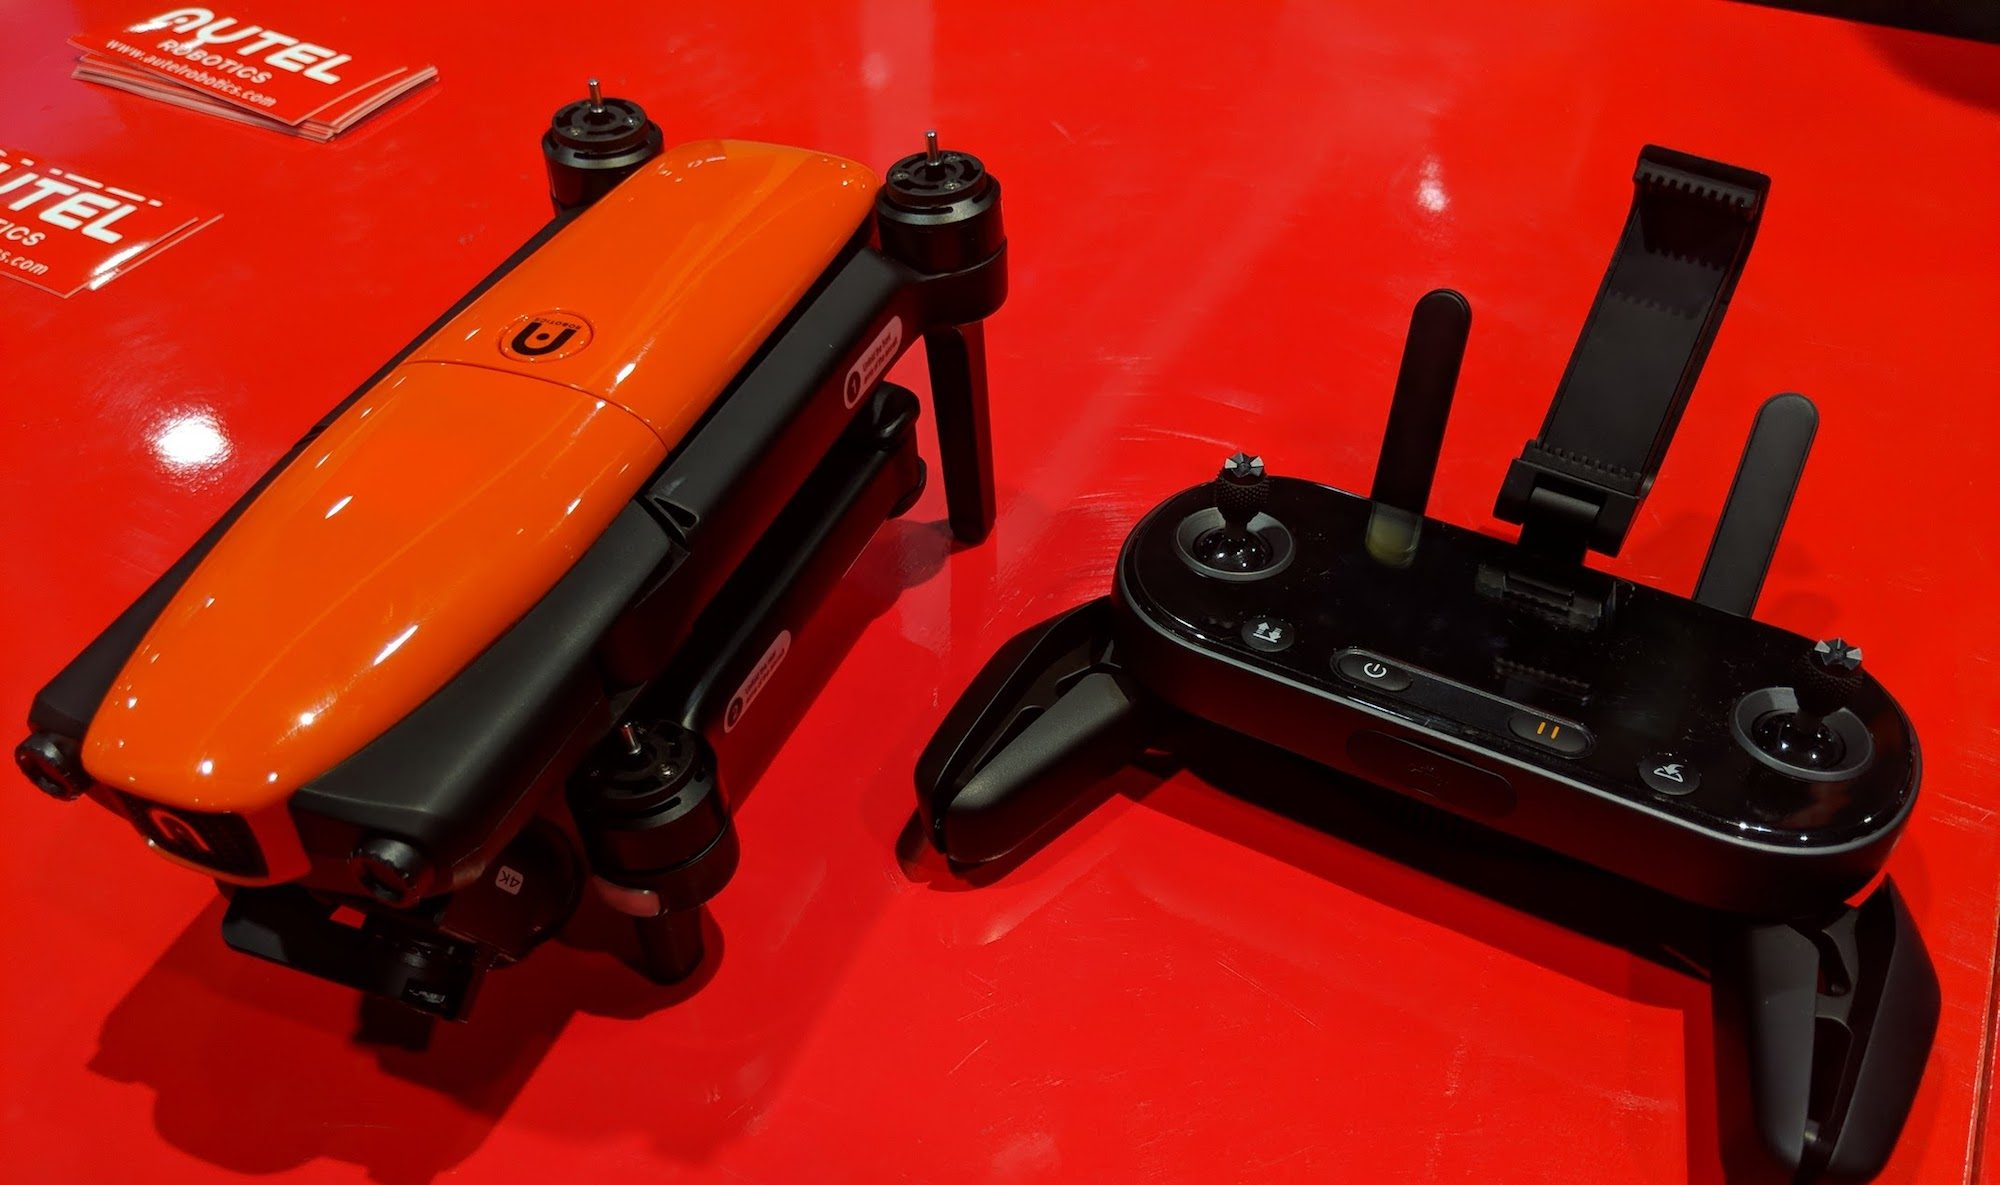 Score the Autel EVO drone + 2 batteries & more for $949 with our exclusive code ($1,150 value)